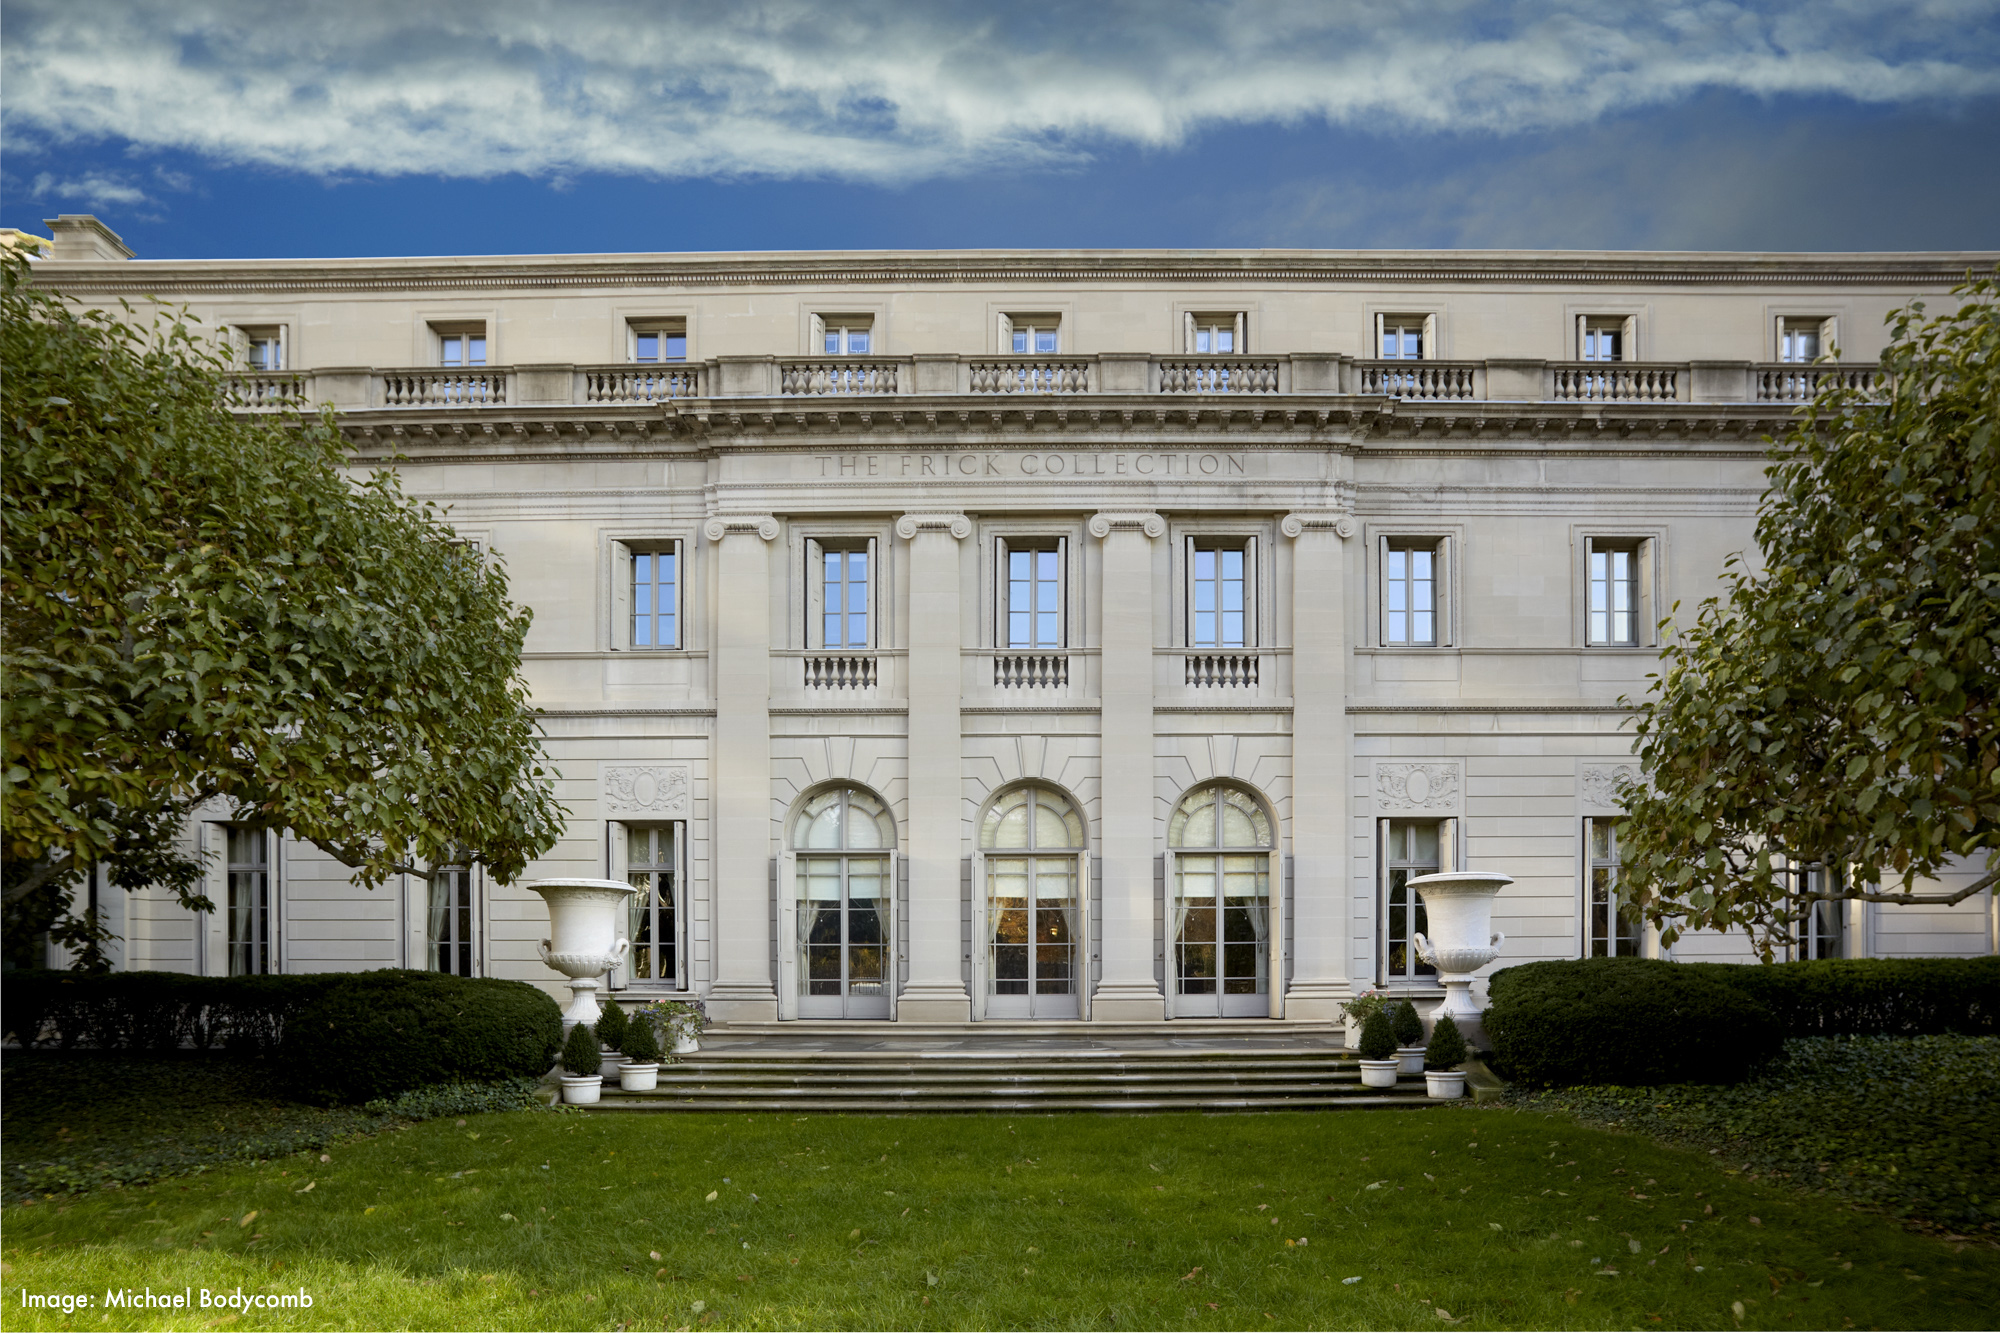 As Such It Is A Fitting Time To Announce One Of Kohler Ronans Latest Projects The Expansion And Enhancement Frick Collections Facilities